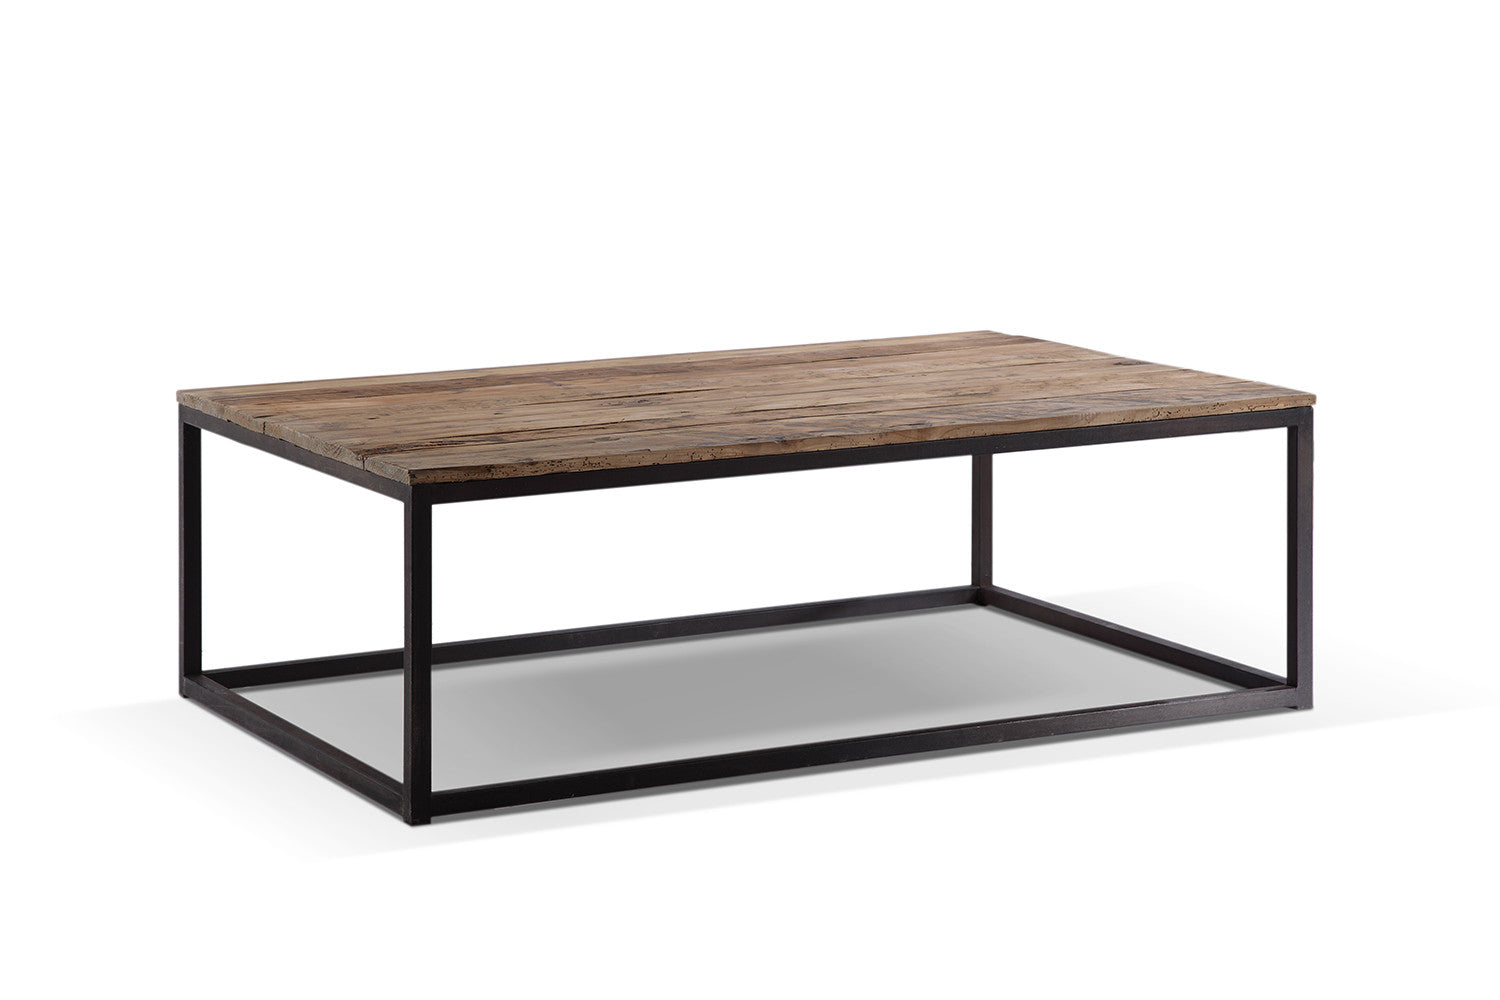 Table basse industrielle en m tal et bois tb02 rose moore - Table basse en metal ...